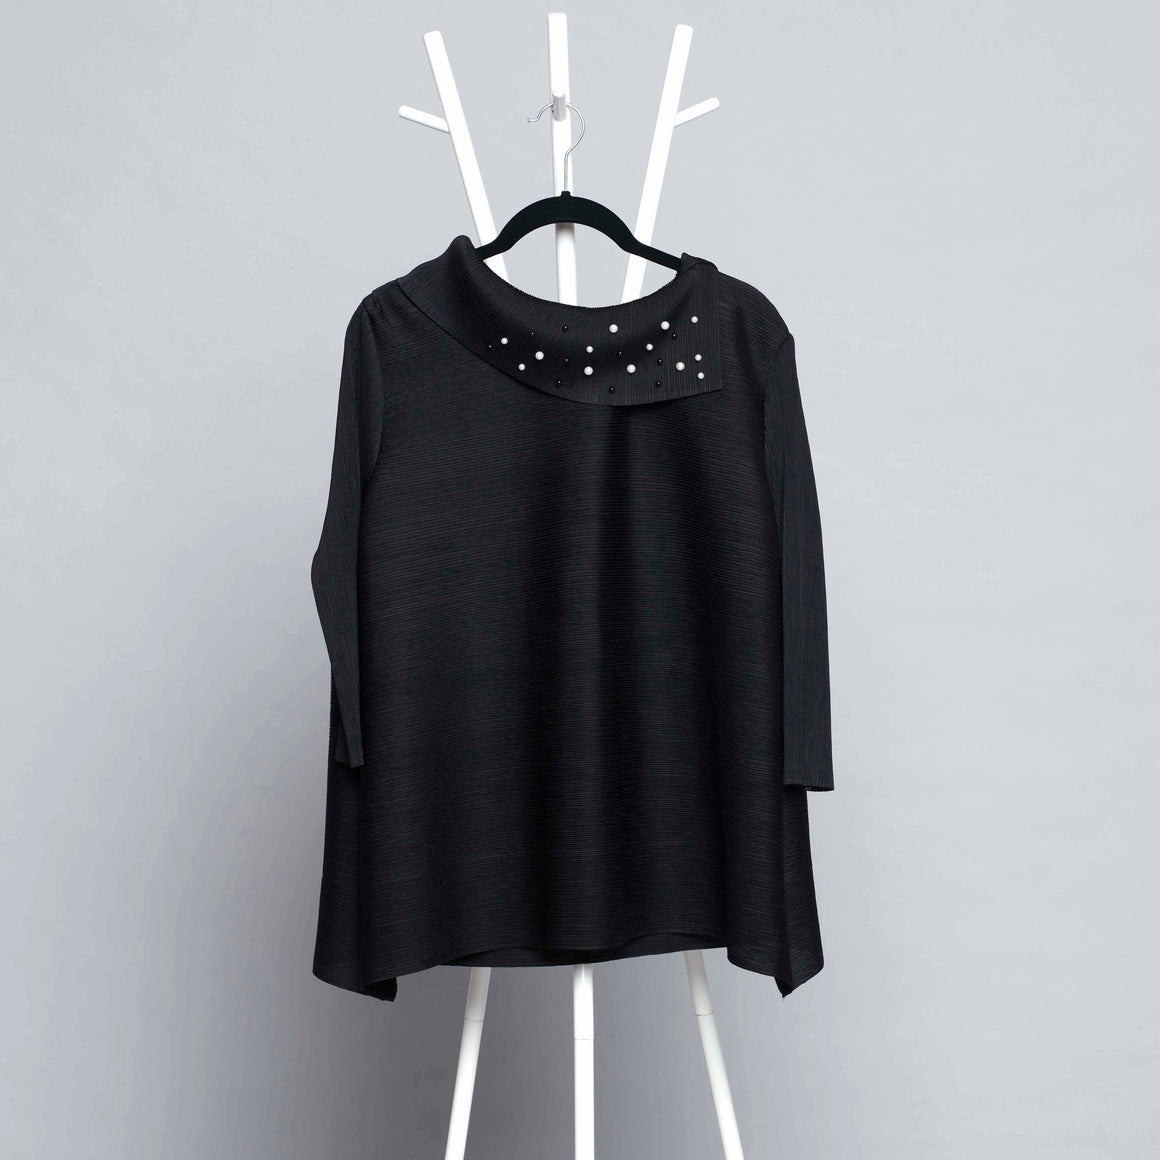 3/4th Sleeve Pearled Collar - Black